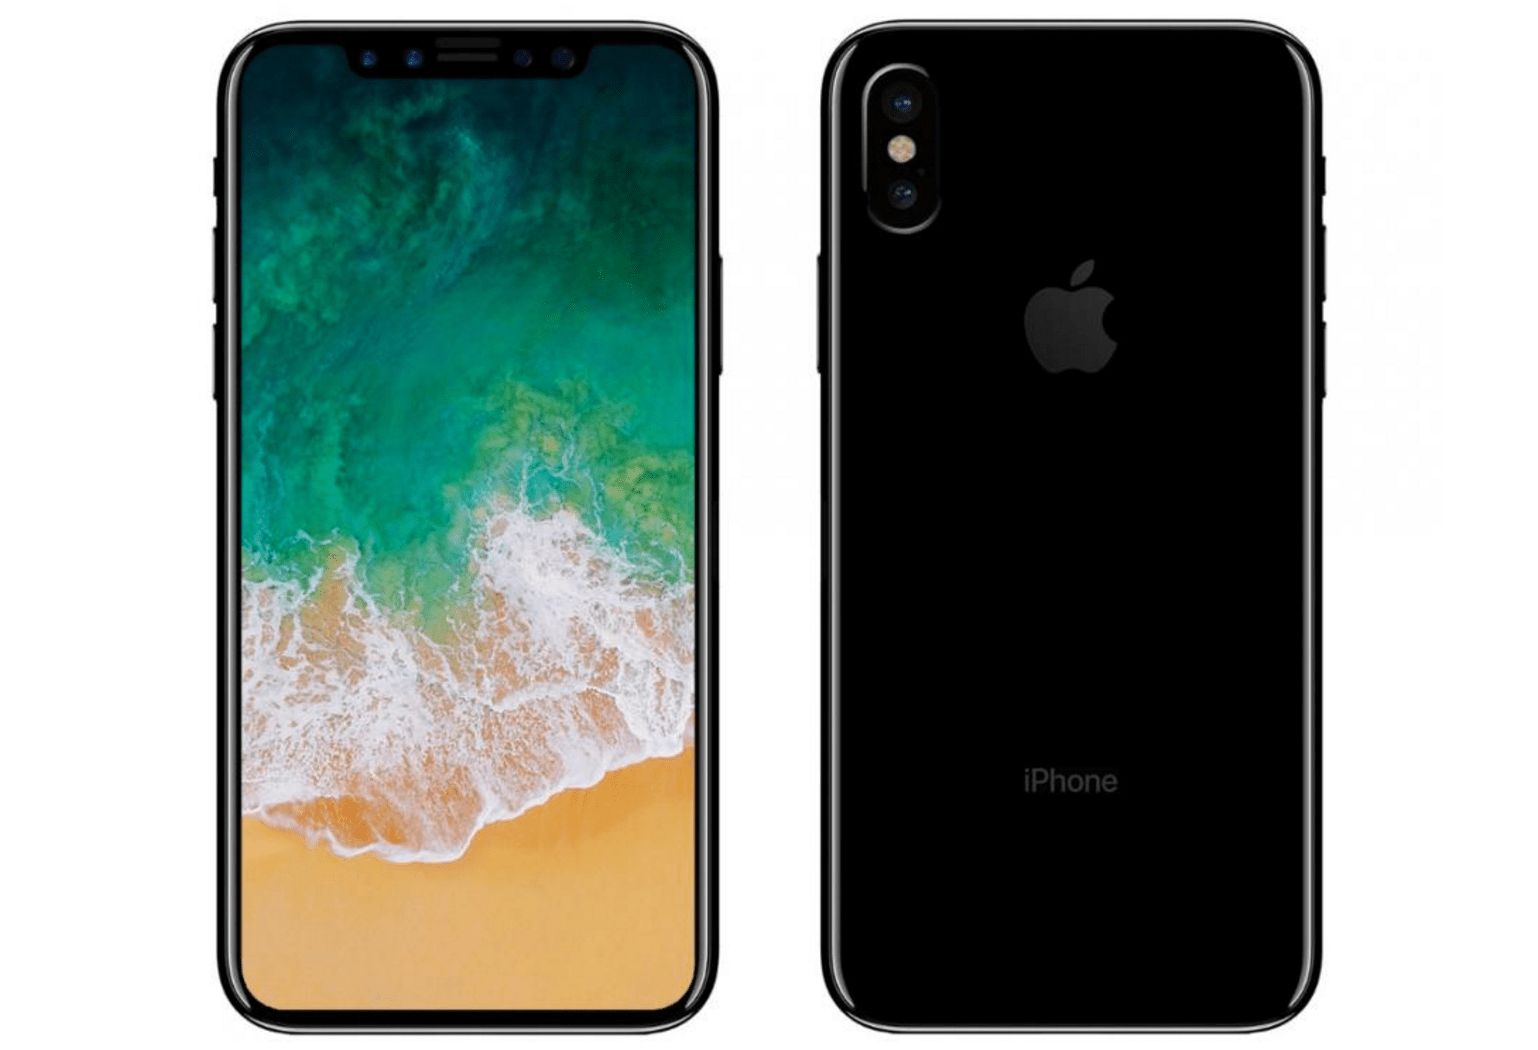 Leaked Images Suggest iPhone 8 May Come in 3 Colors